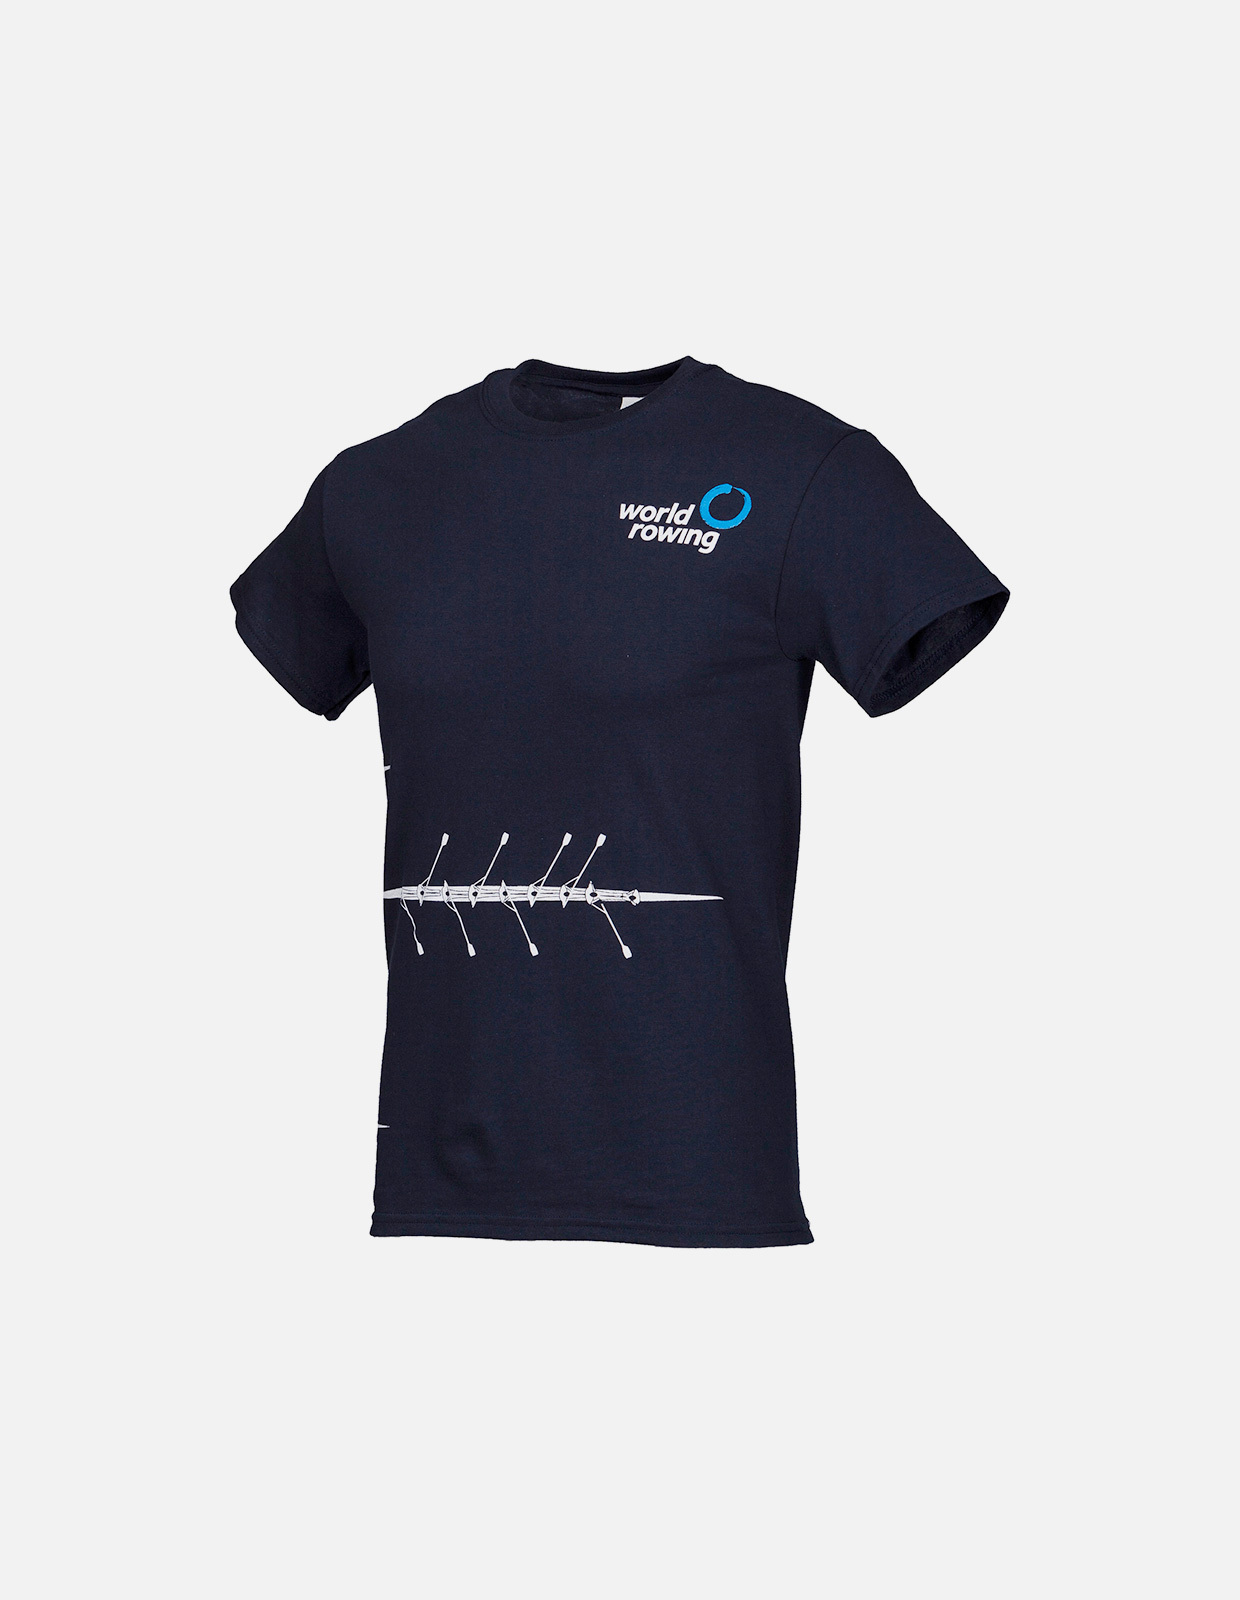 World rowing boat tee navy m 01e